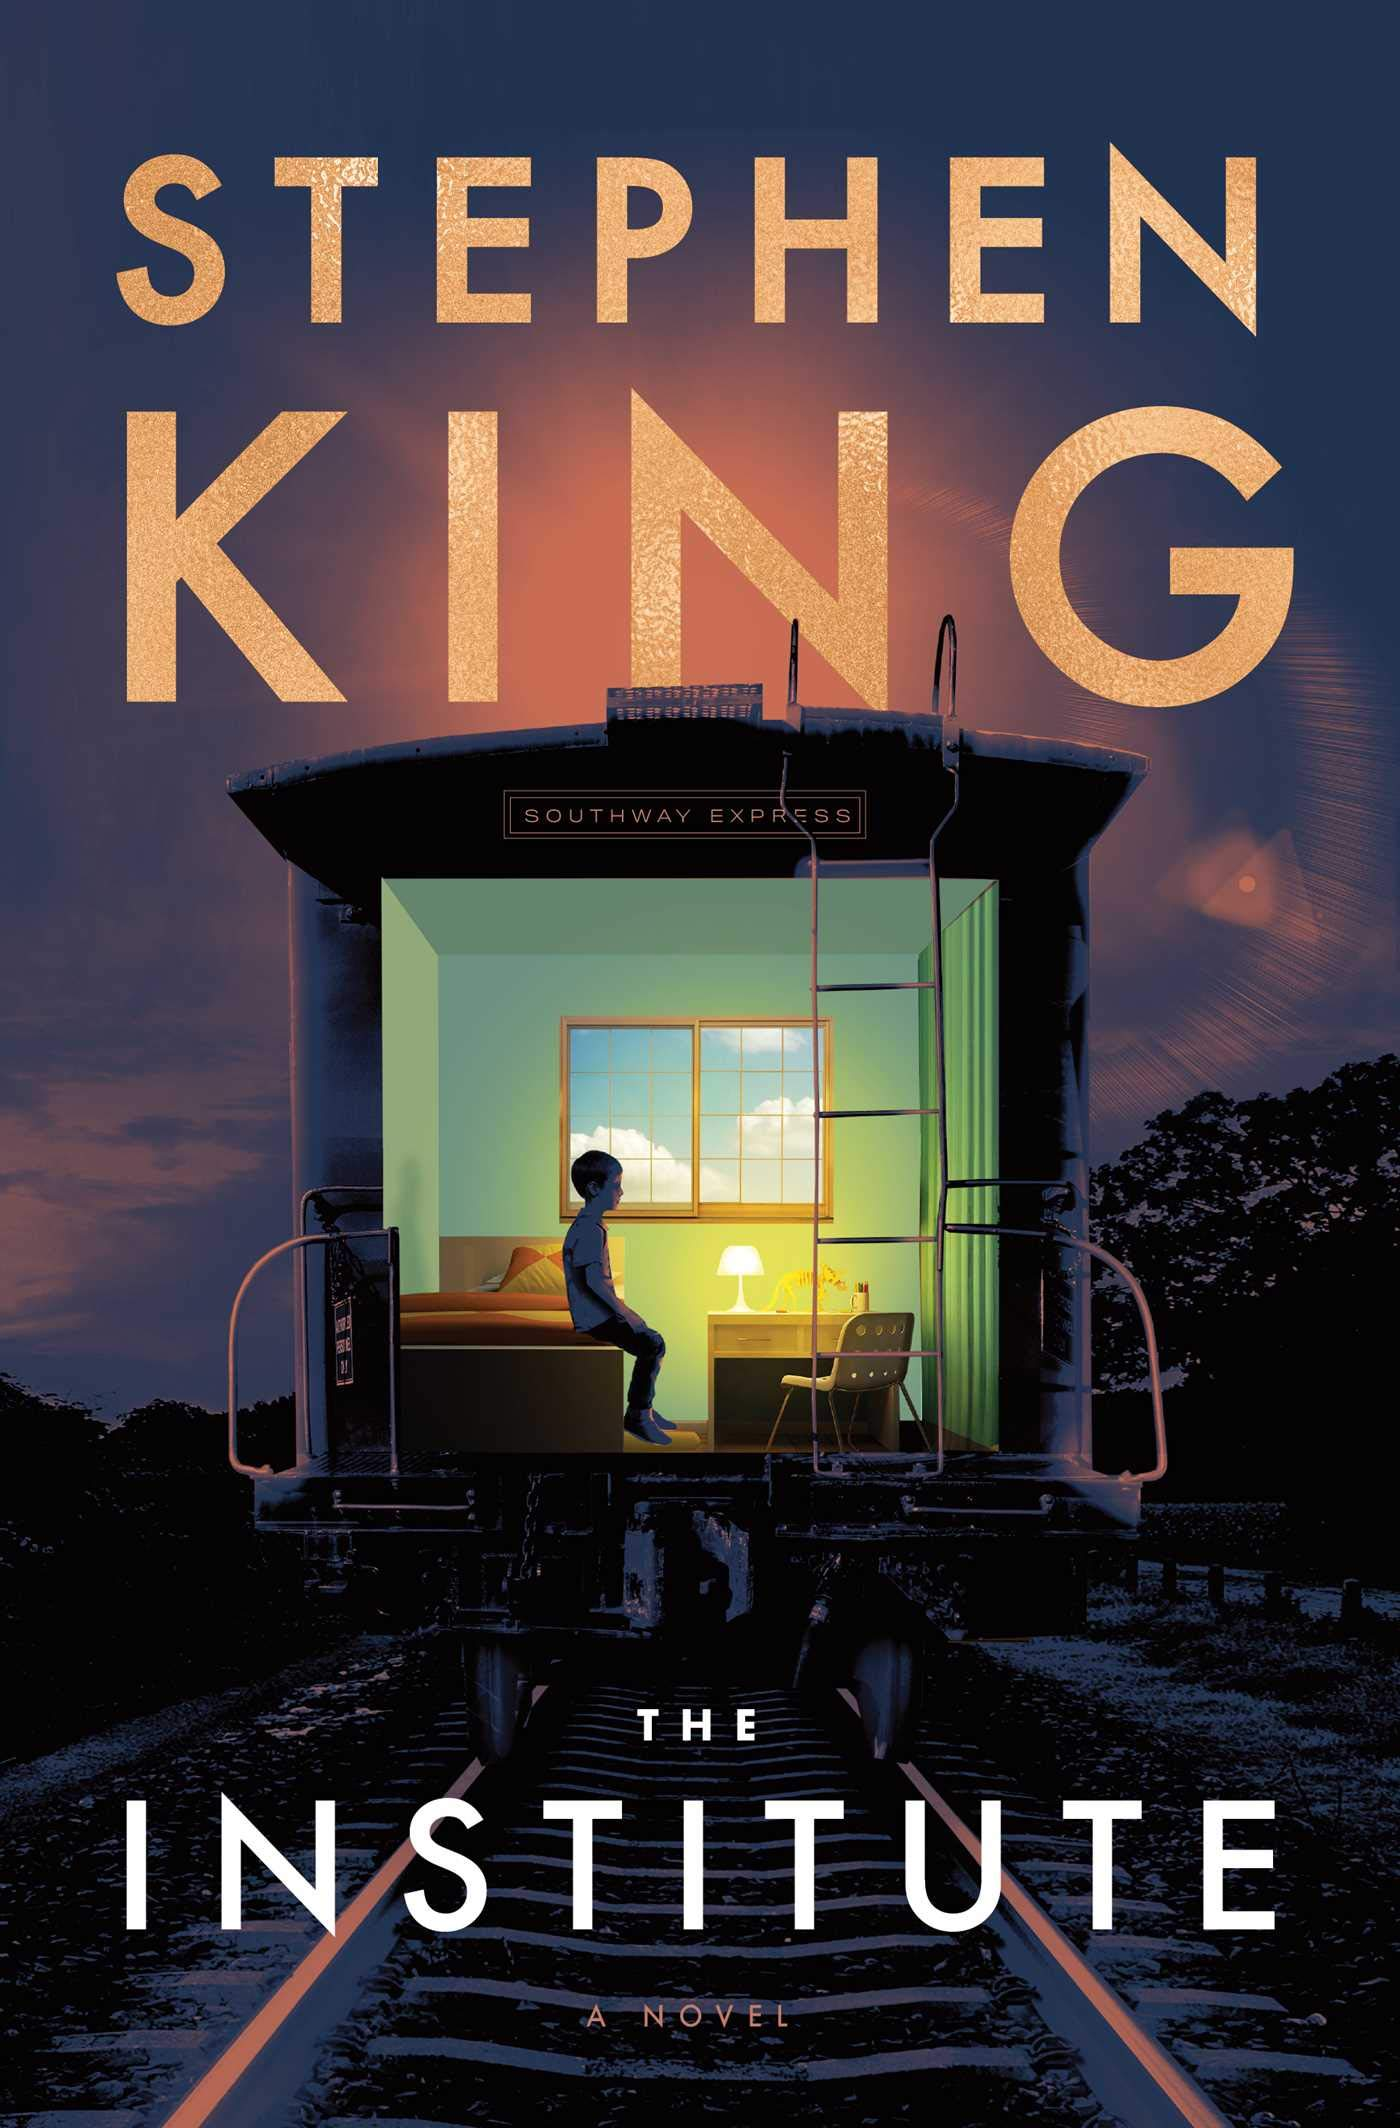 Stephen King The Institute US cover